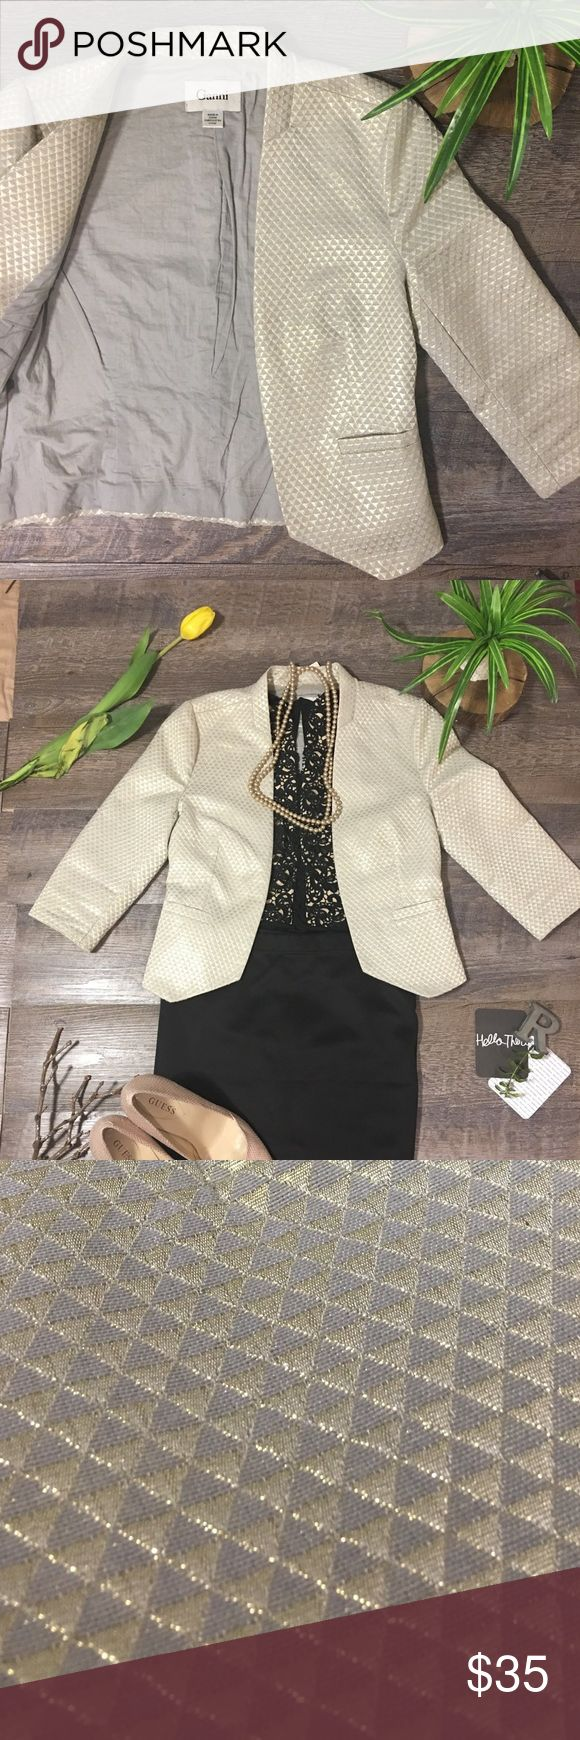 ANTHROPOLOGIE GANNI GEOMETRICAL METALLIC  BLAZER Gold metallic triangle pattern throughout.  Super eye catching and fun! Size XS.Would work well for sizes 2-4. Too small for me. Anthropologie Jackets & Coats Blazers